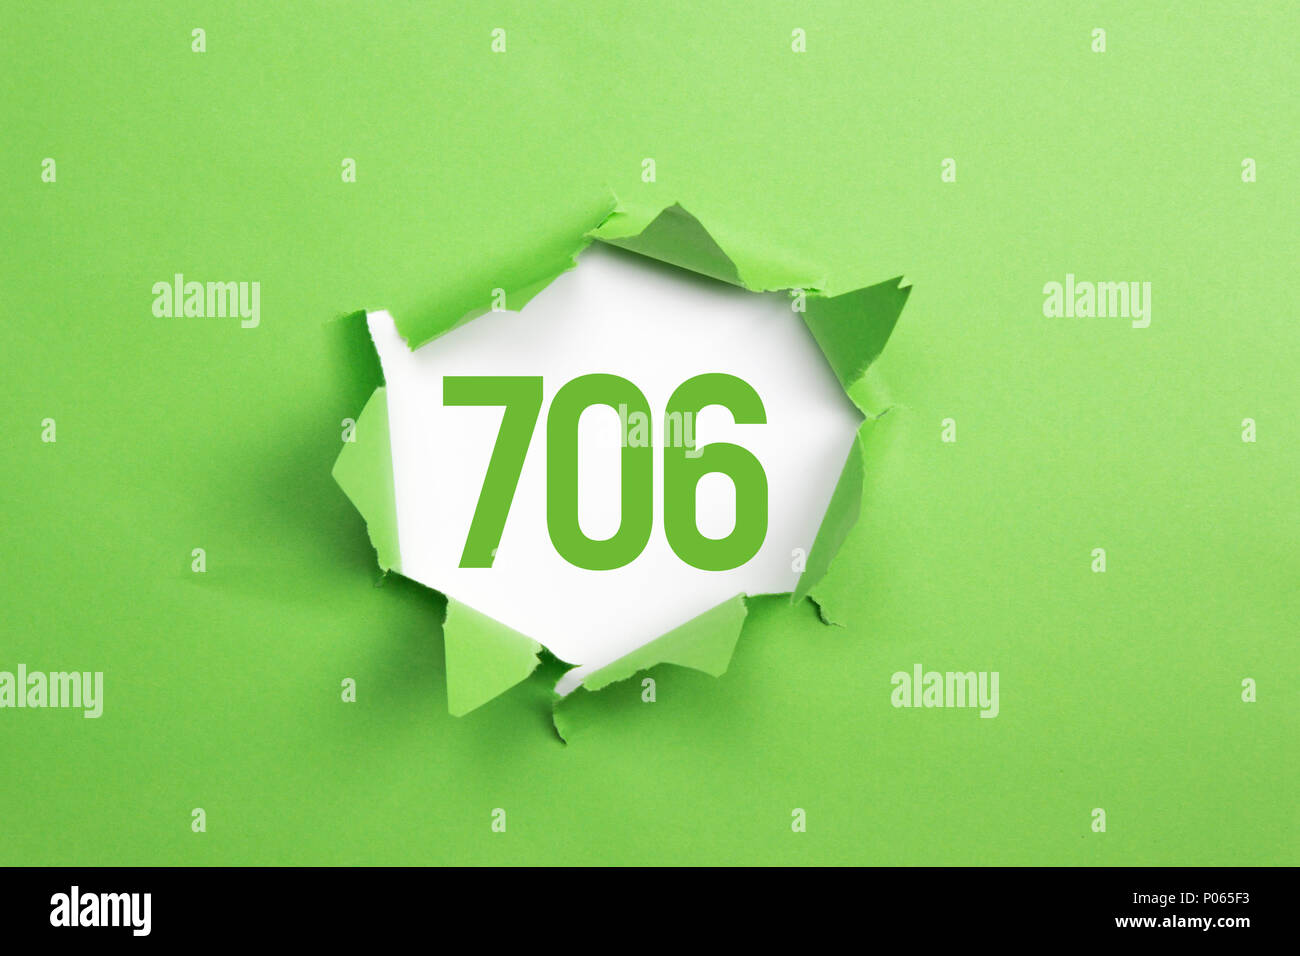 Green Number 706 on green paper background - Stock Image